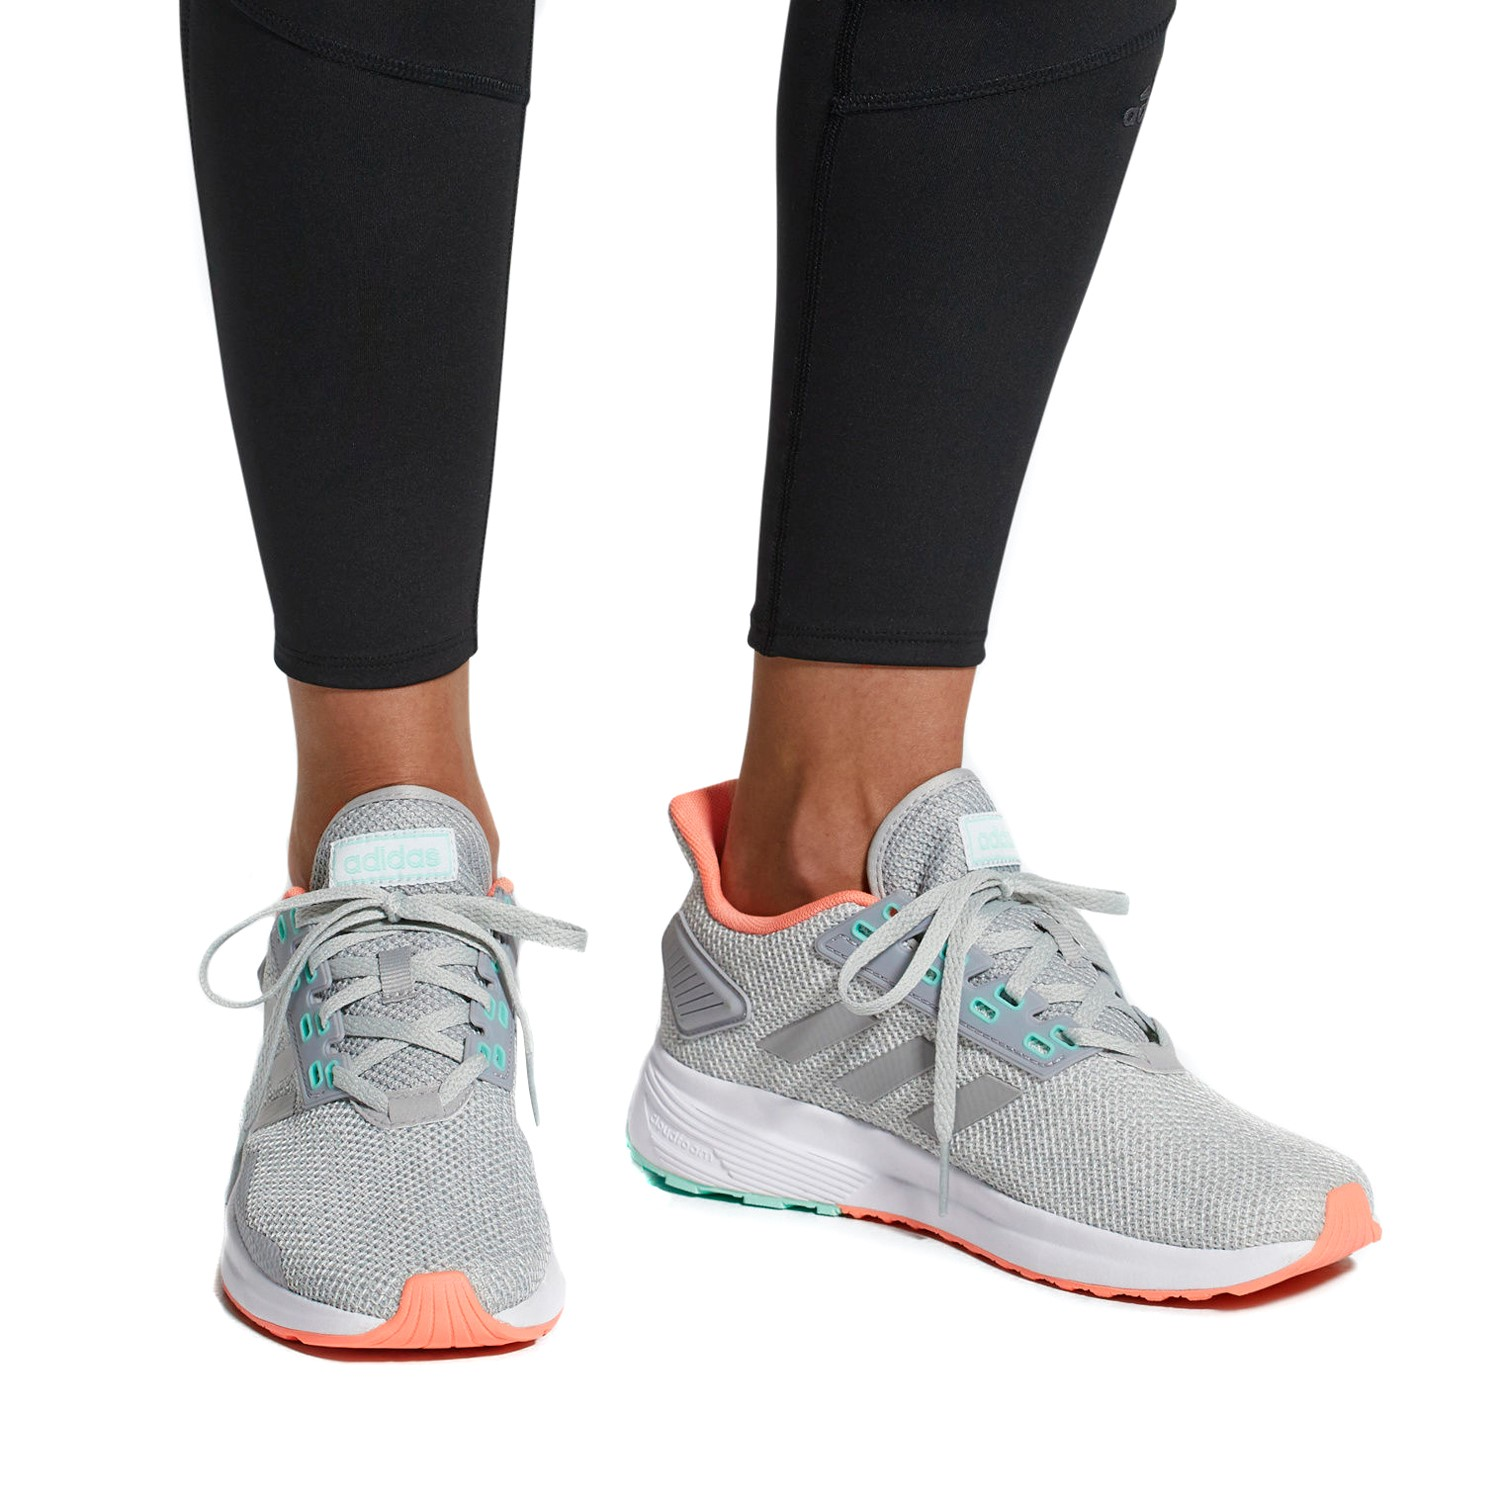 8d1f348a940 Adidas Duramo 9 - Womens Running Shoes - Grey Chalk Coral Green ...